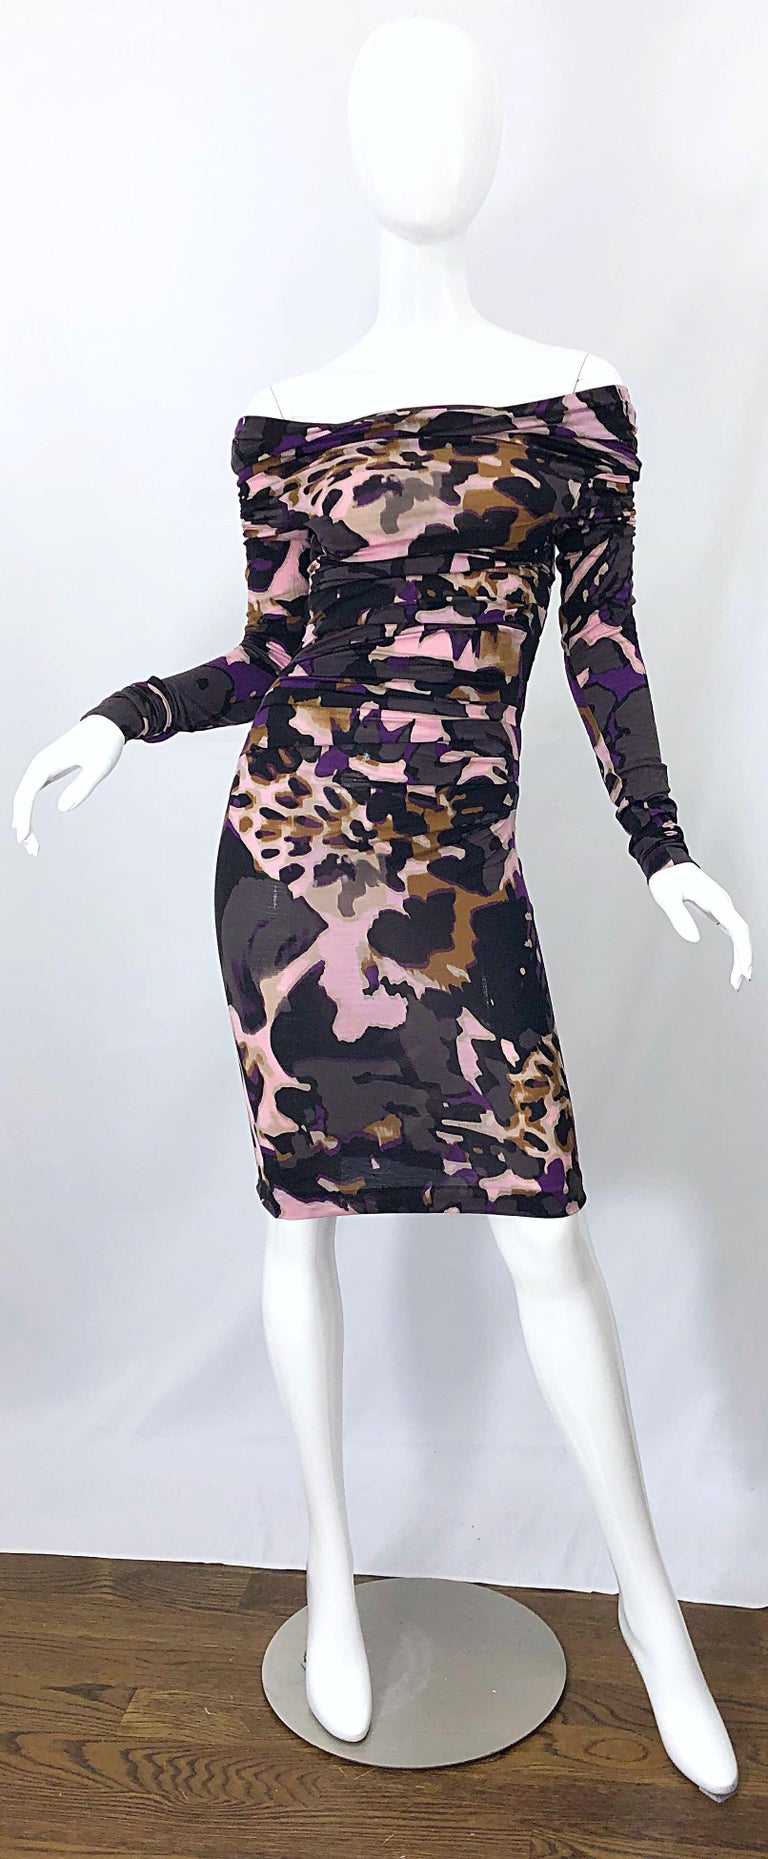 Incredible new ESCADA lightweight wool off-the-shoulder mixed animal print dress! Vibrant colors of purple, pink, gray, brown, rust and black throughout. Flattering ruching disguises any problem areas. The perfect lightweight fabric blends of wool